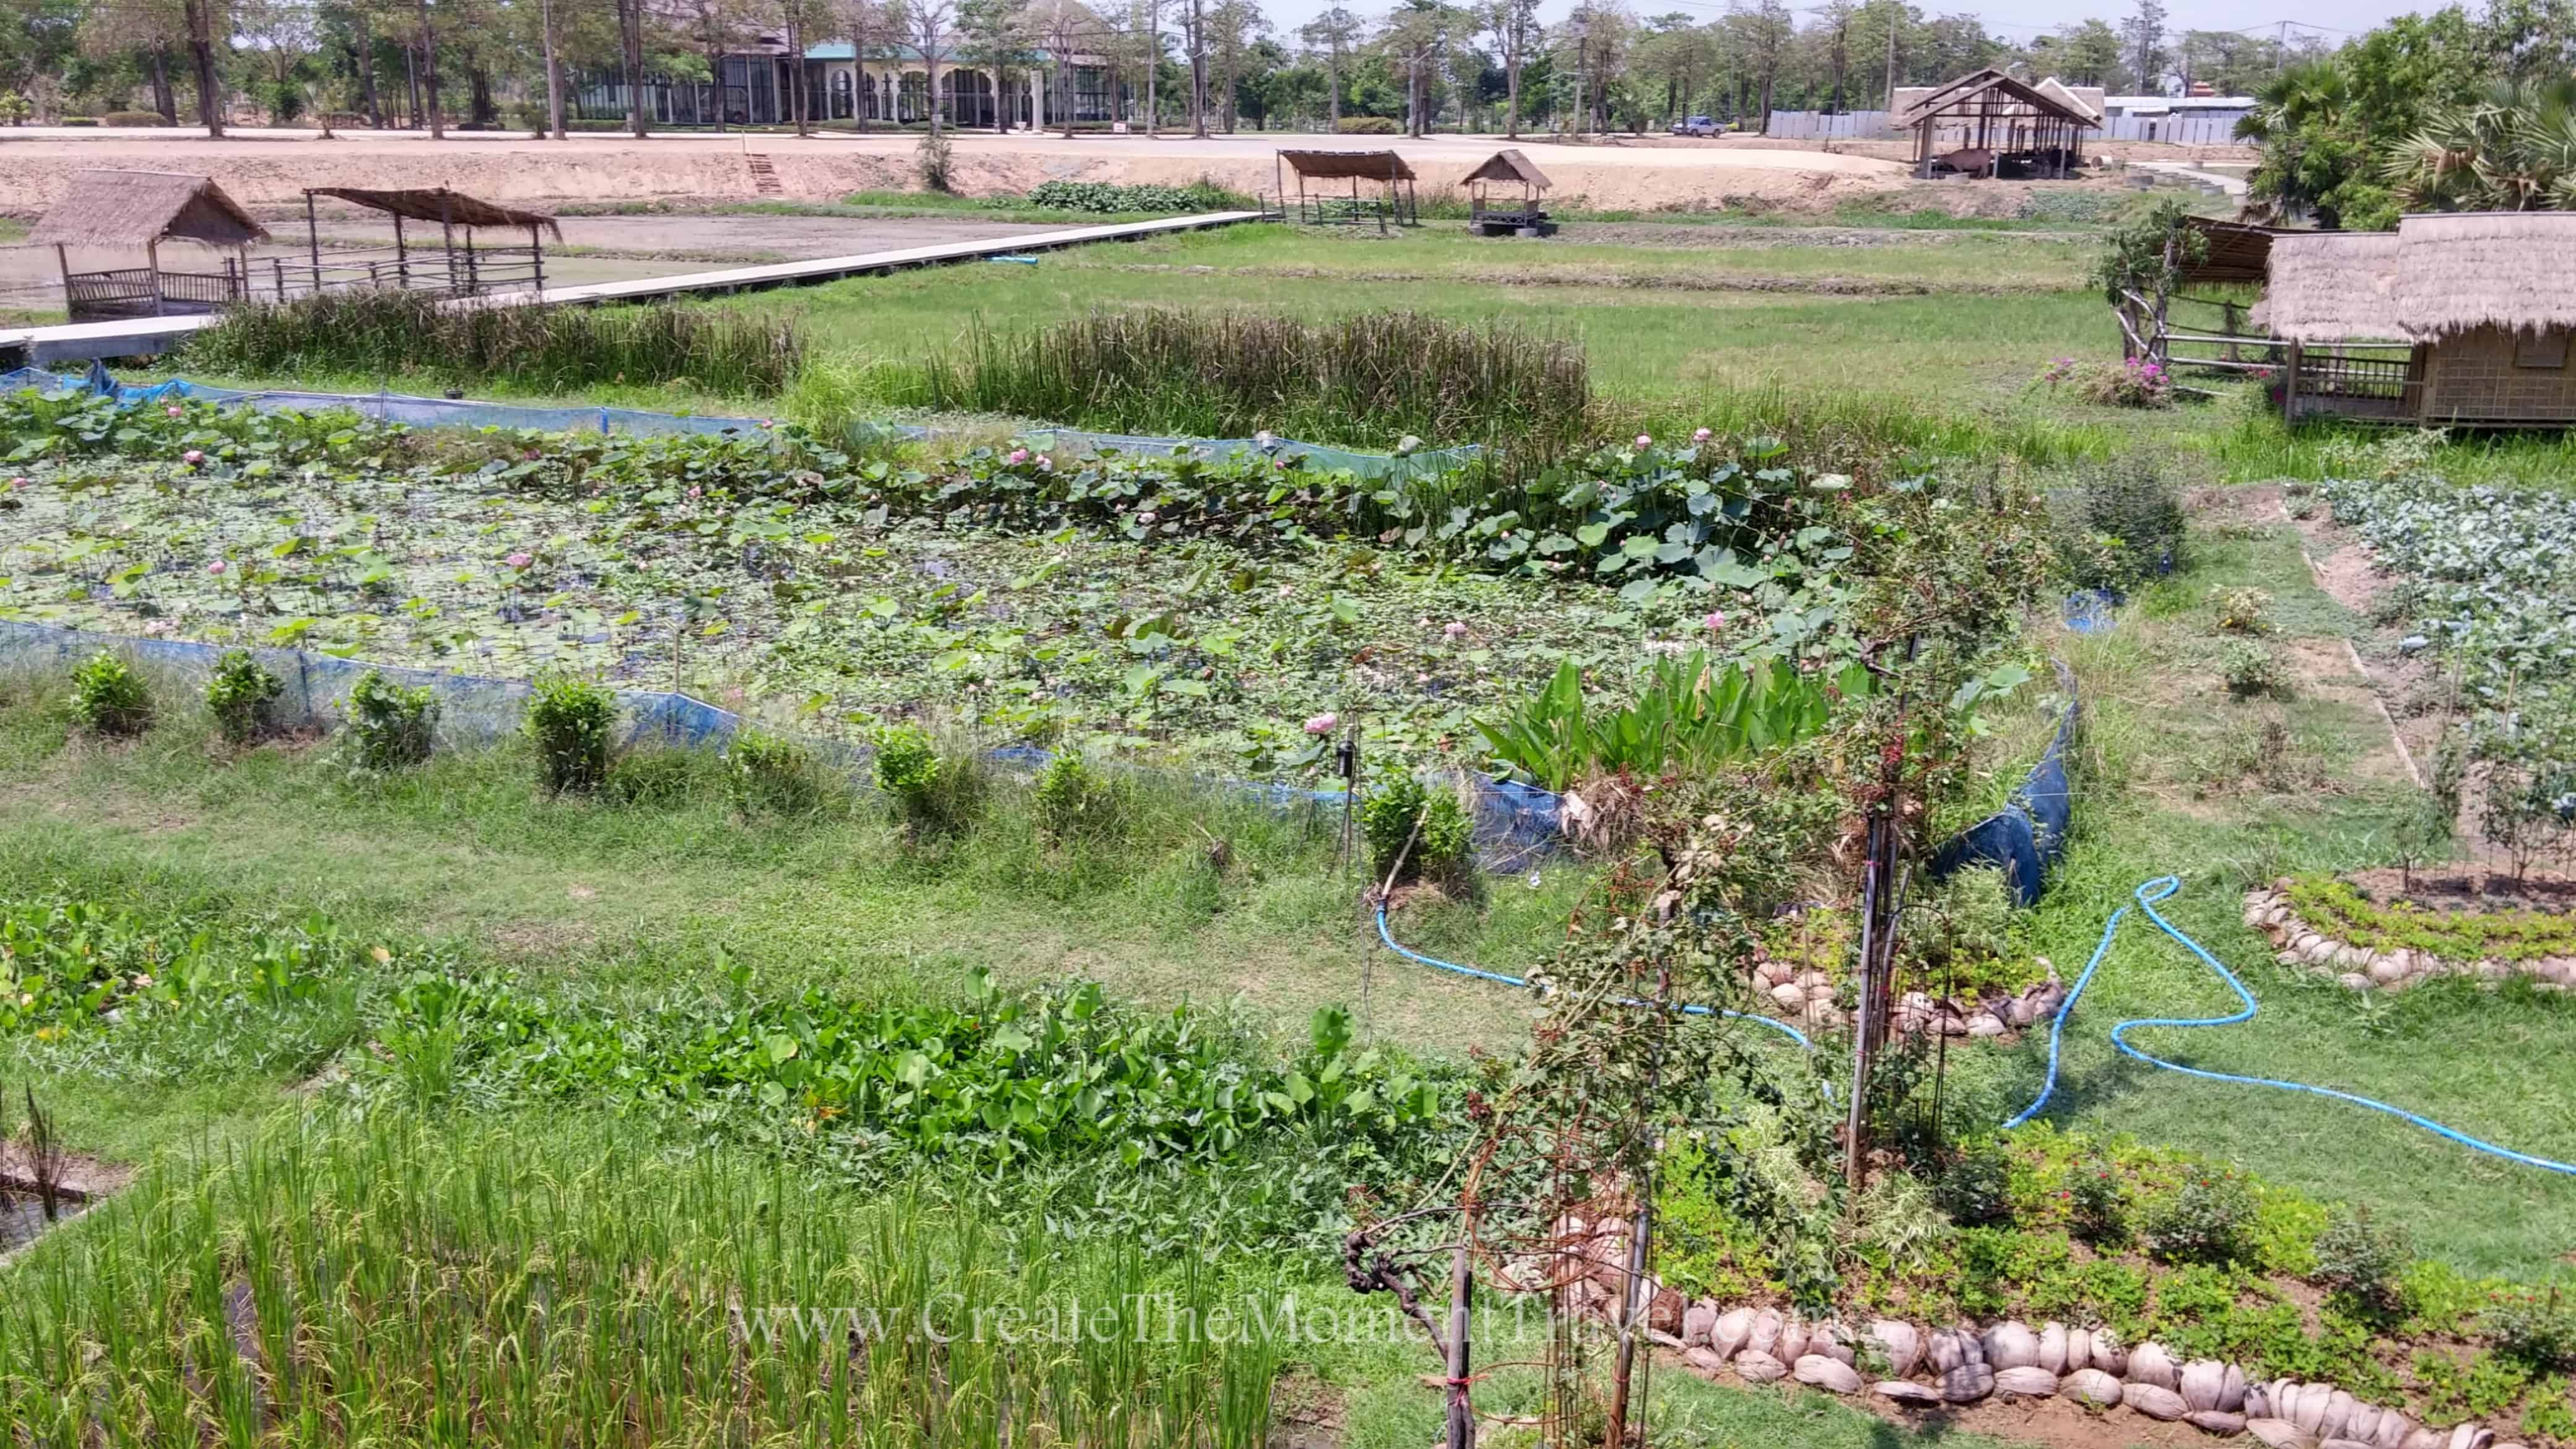 Organic Farming in Sukhothai Northern Thailand by Create The Moment Travel